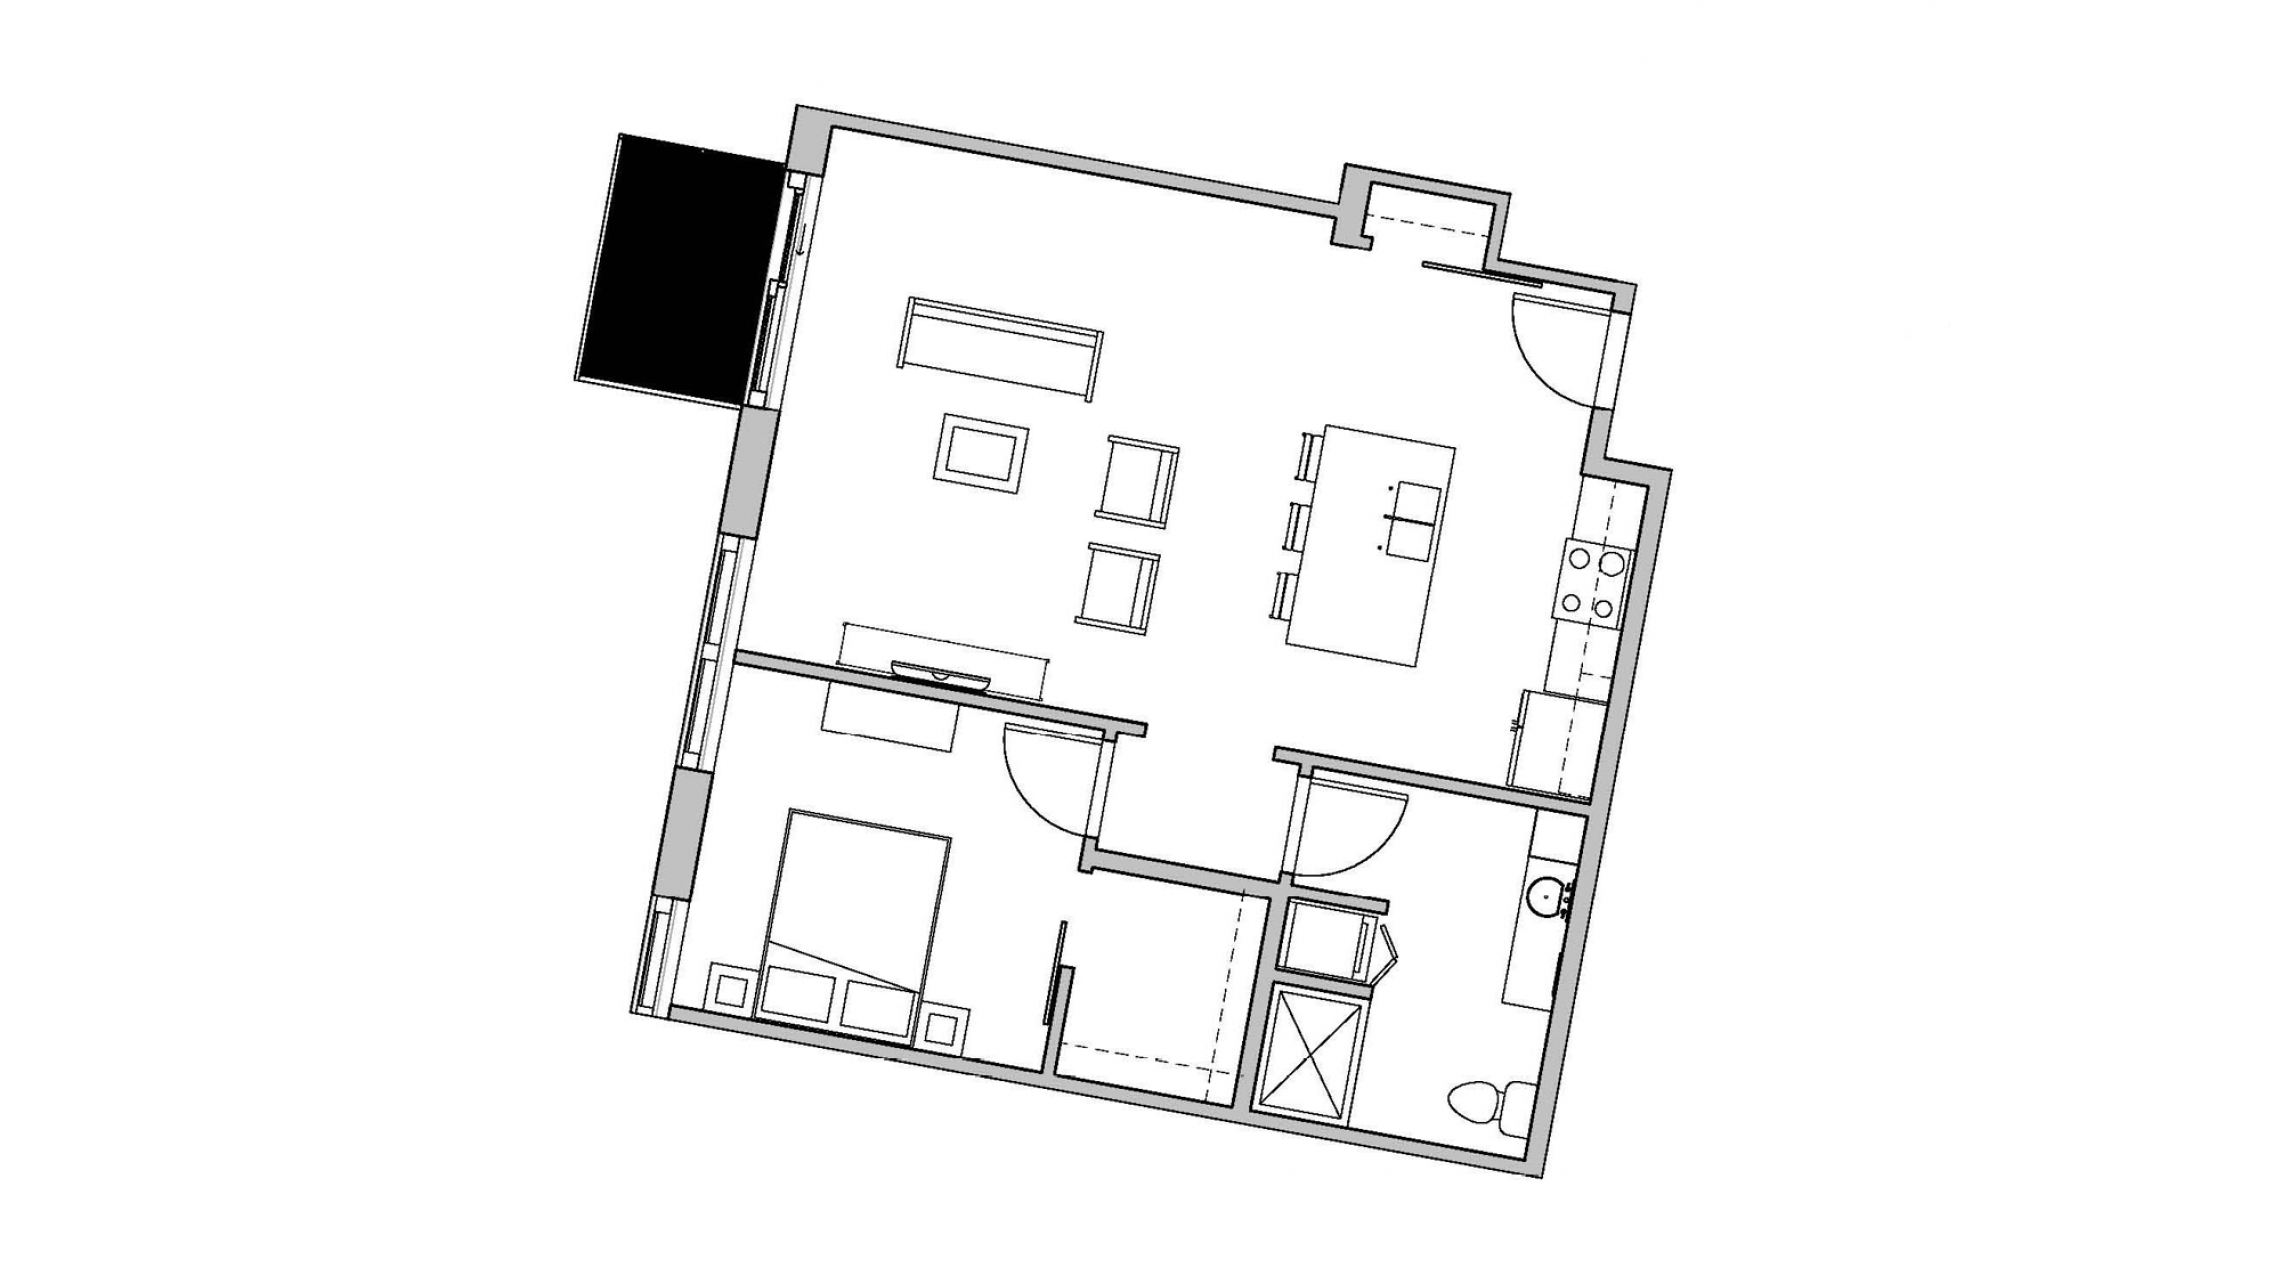 ULI Seven27 330 - One Bedroom, One Bathroom